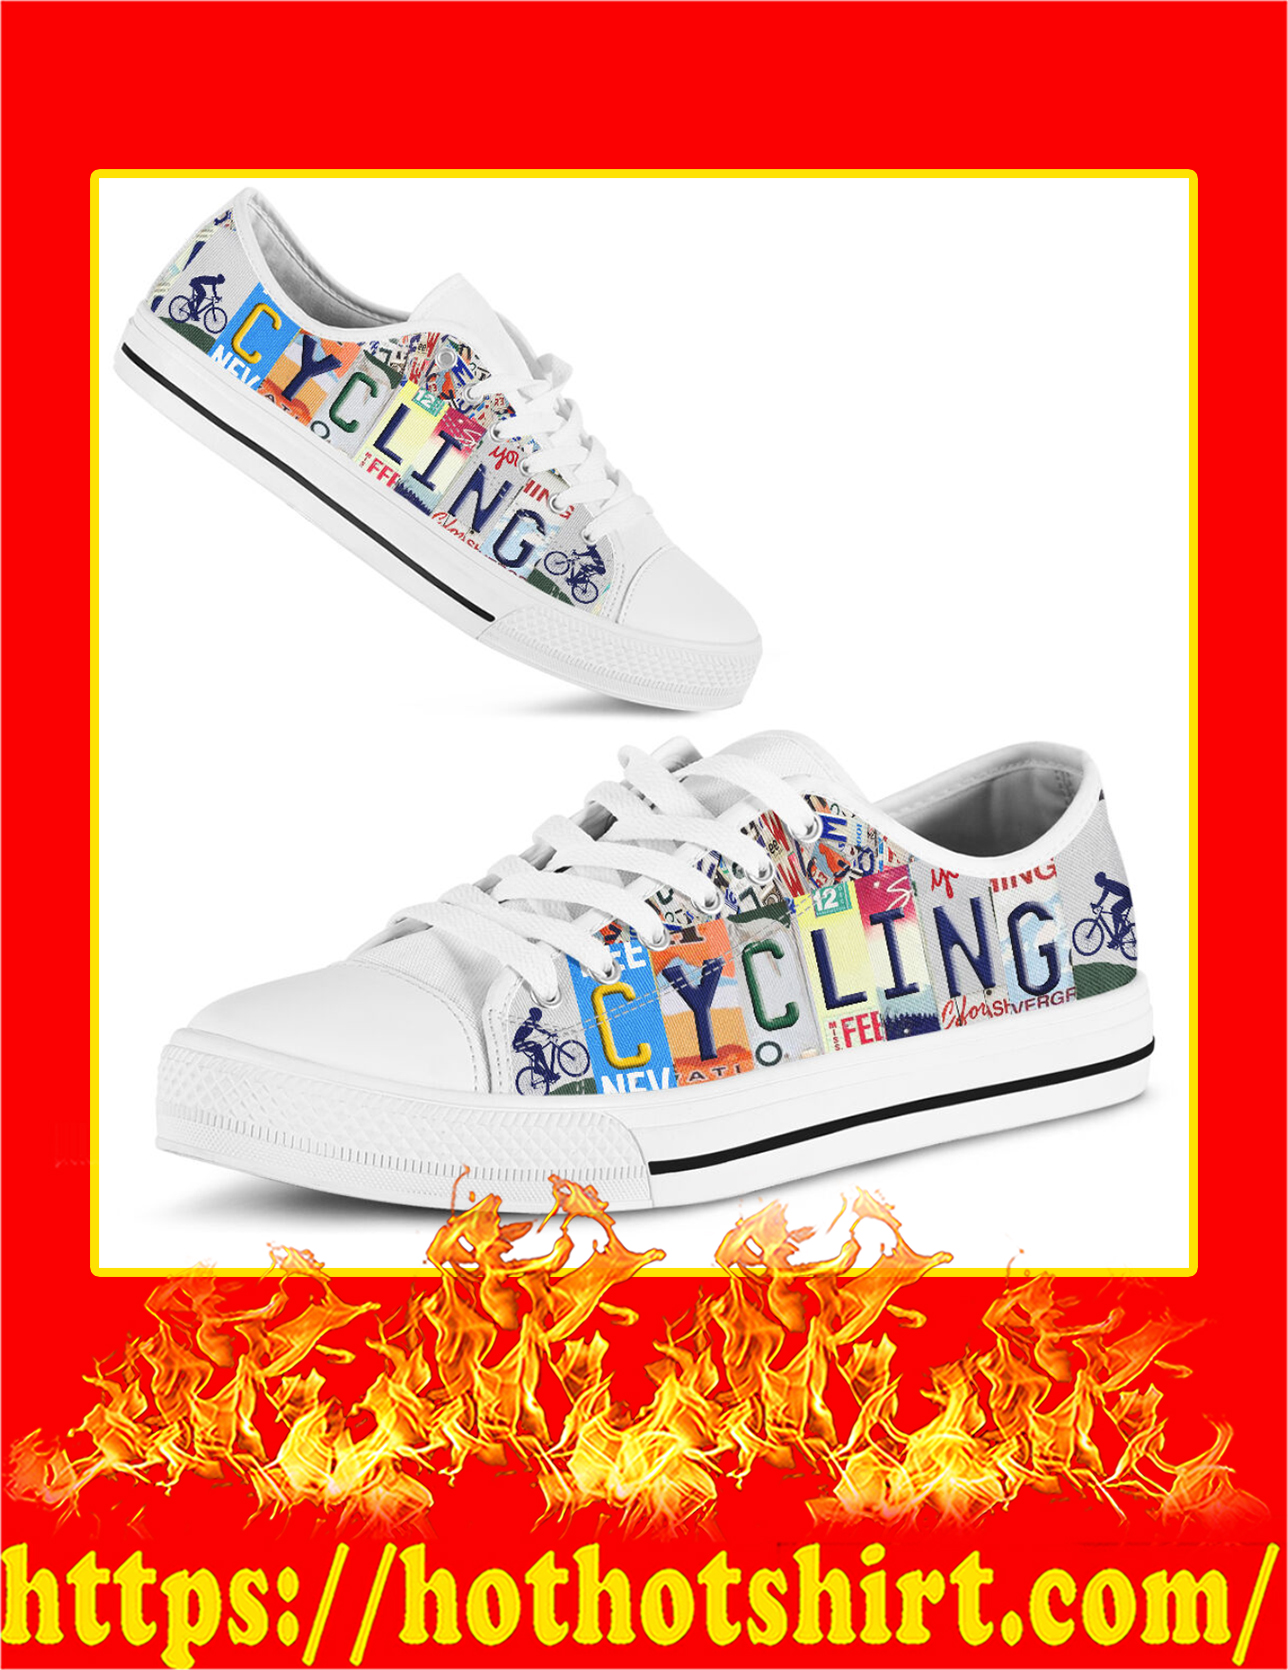 Cycling Low Top Shoes - Pic 1